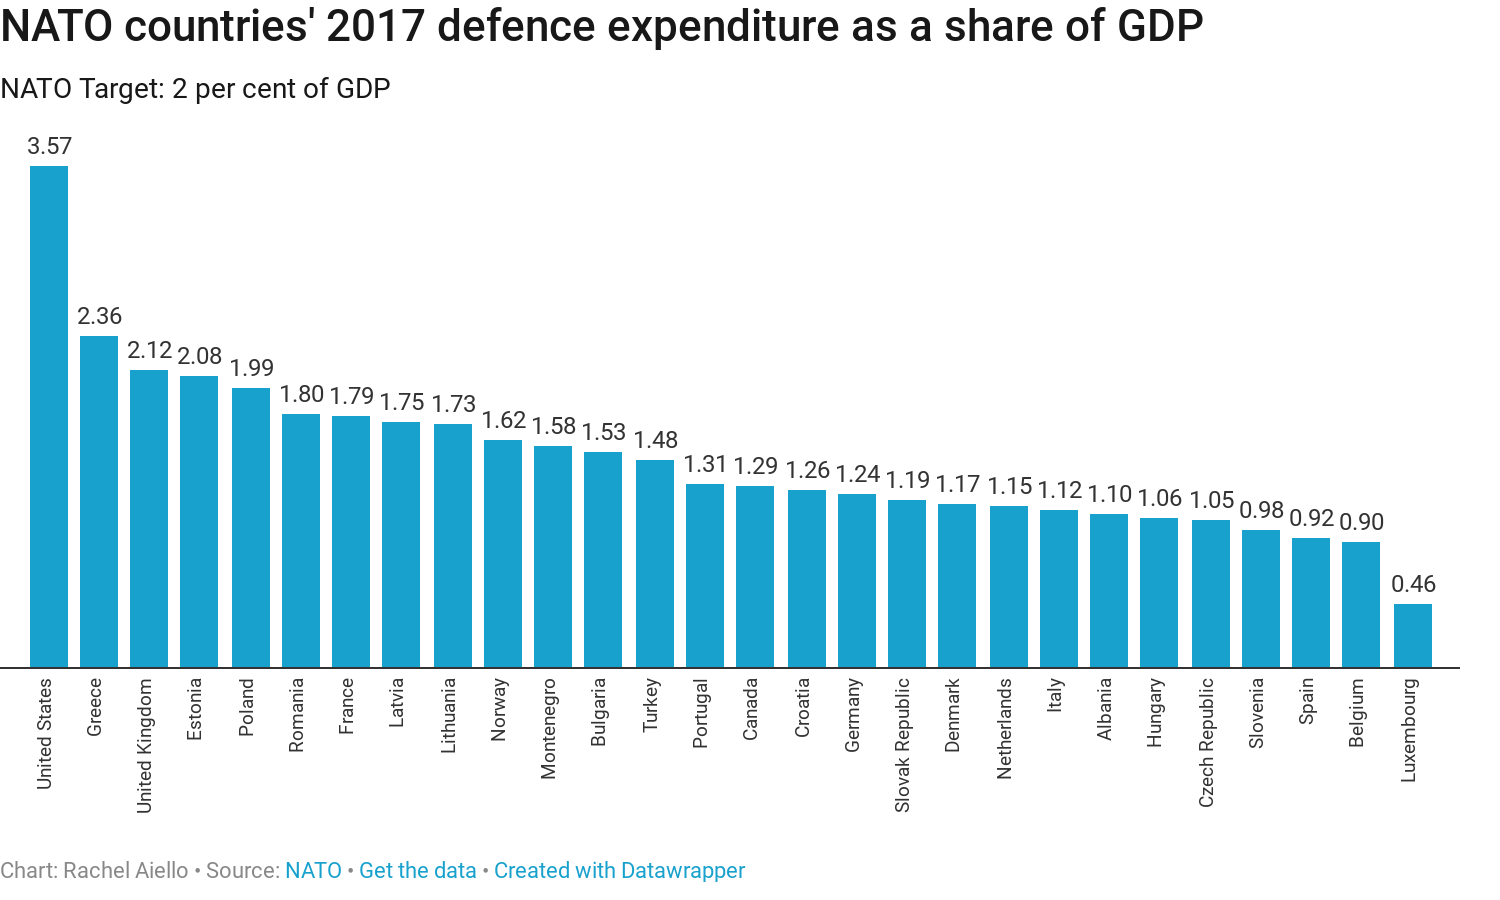 NATO countries' 2017 defence expenditure as share of GDP (Rachel Aiello)